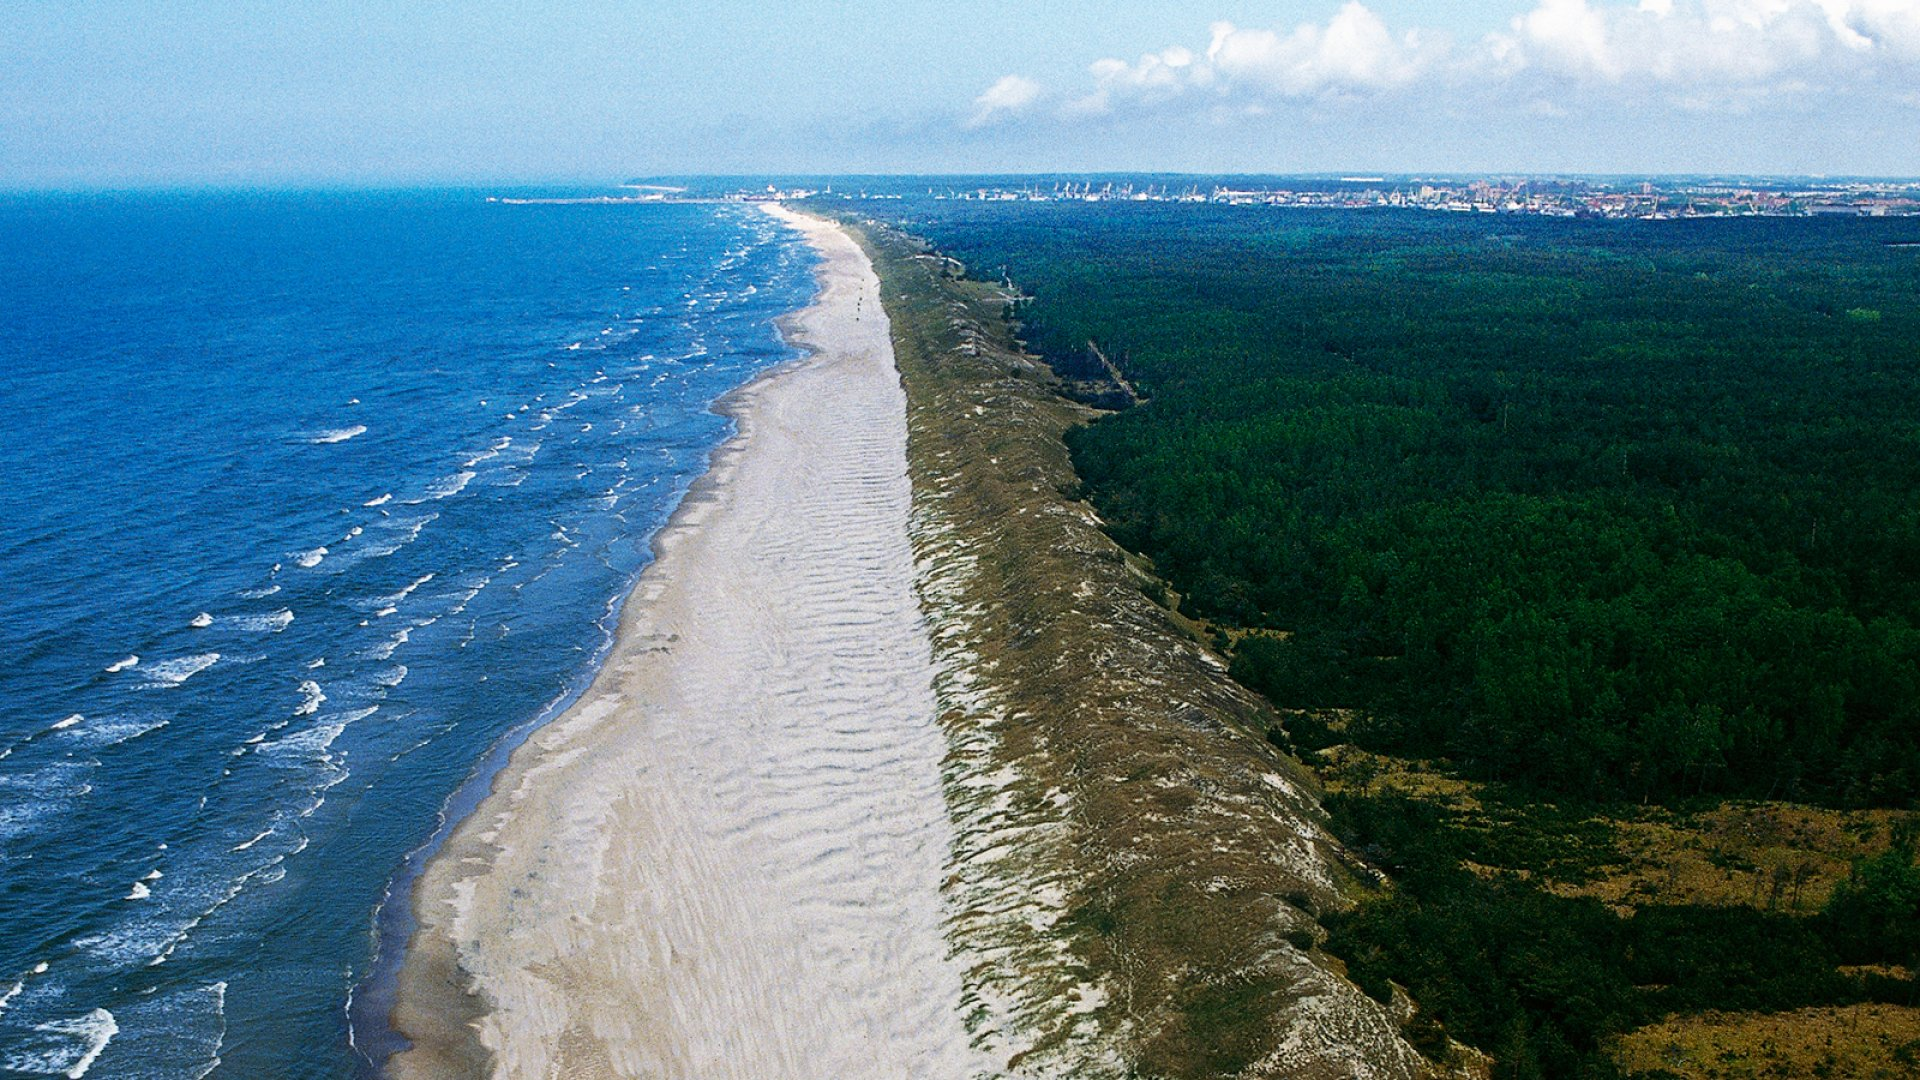 Aerial view of the Curonian Spit, Lithuania.